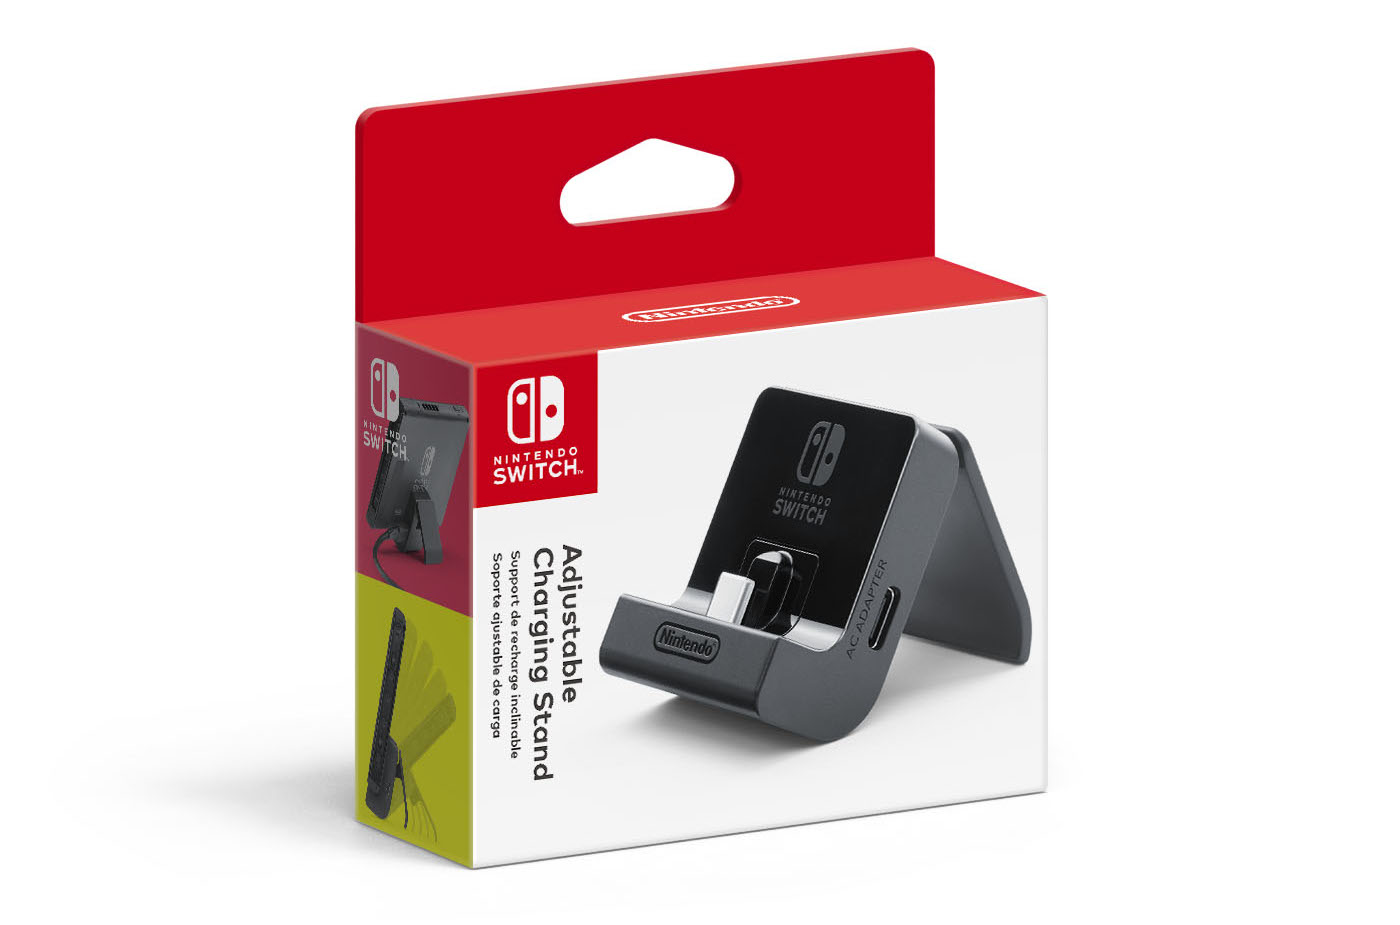 Nintendo Switch Adjustable Charging Stand Packaging